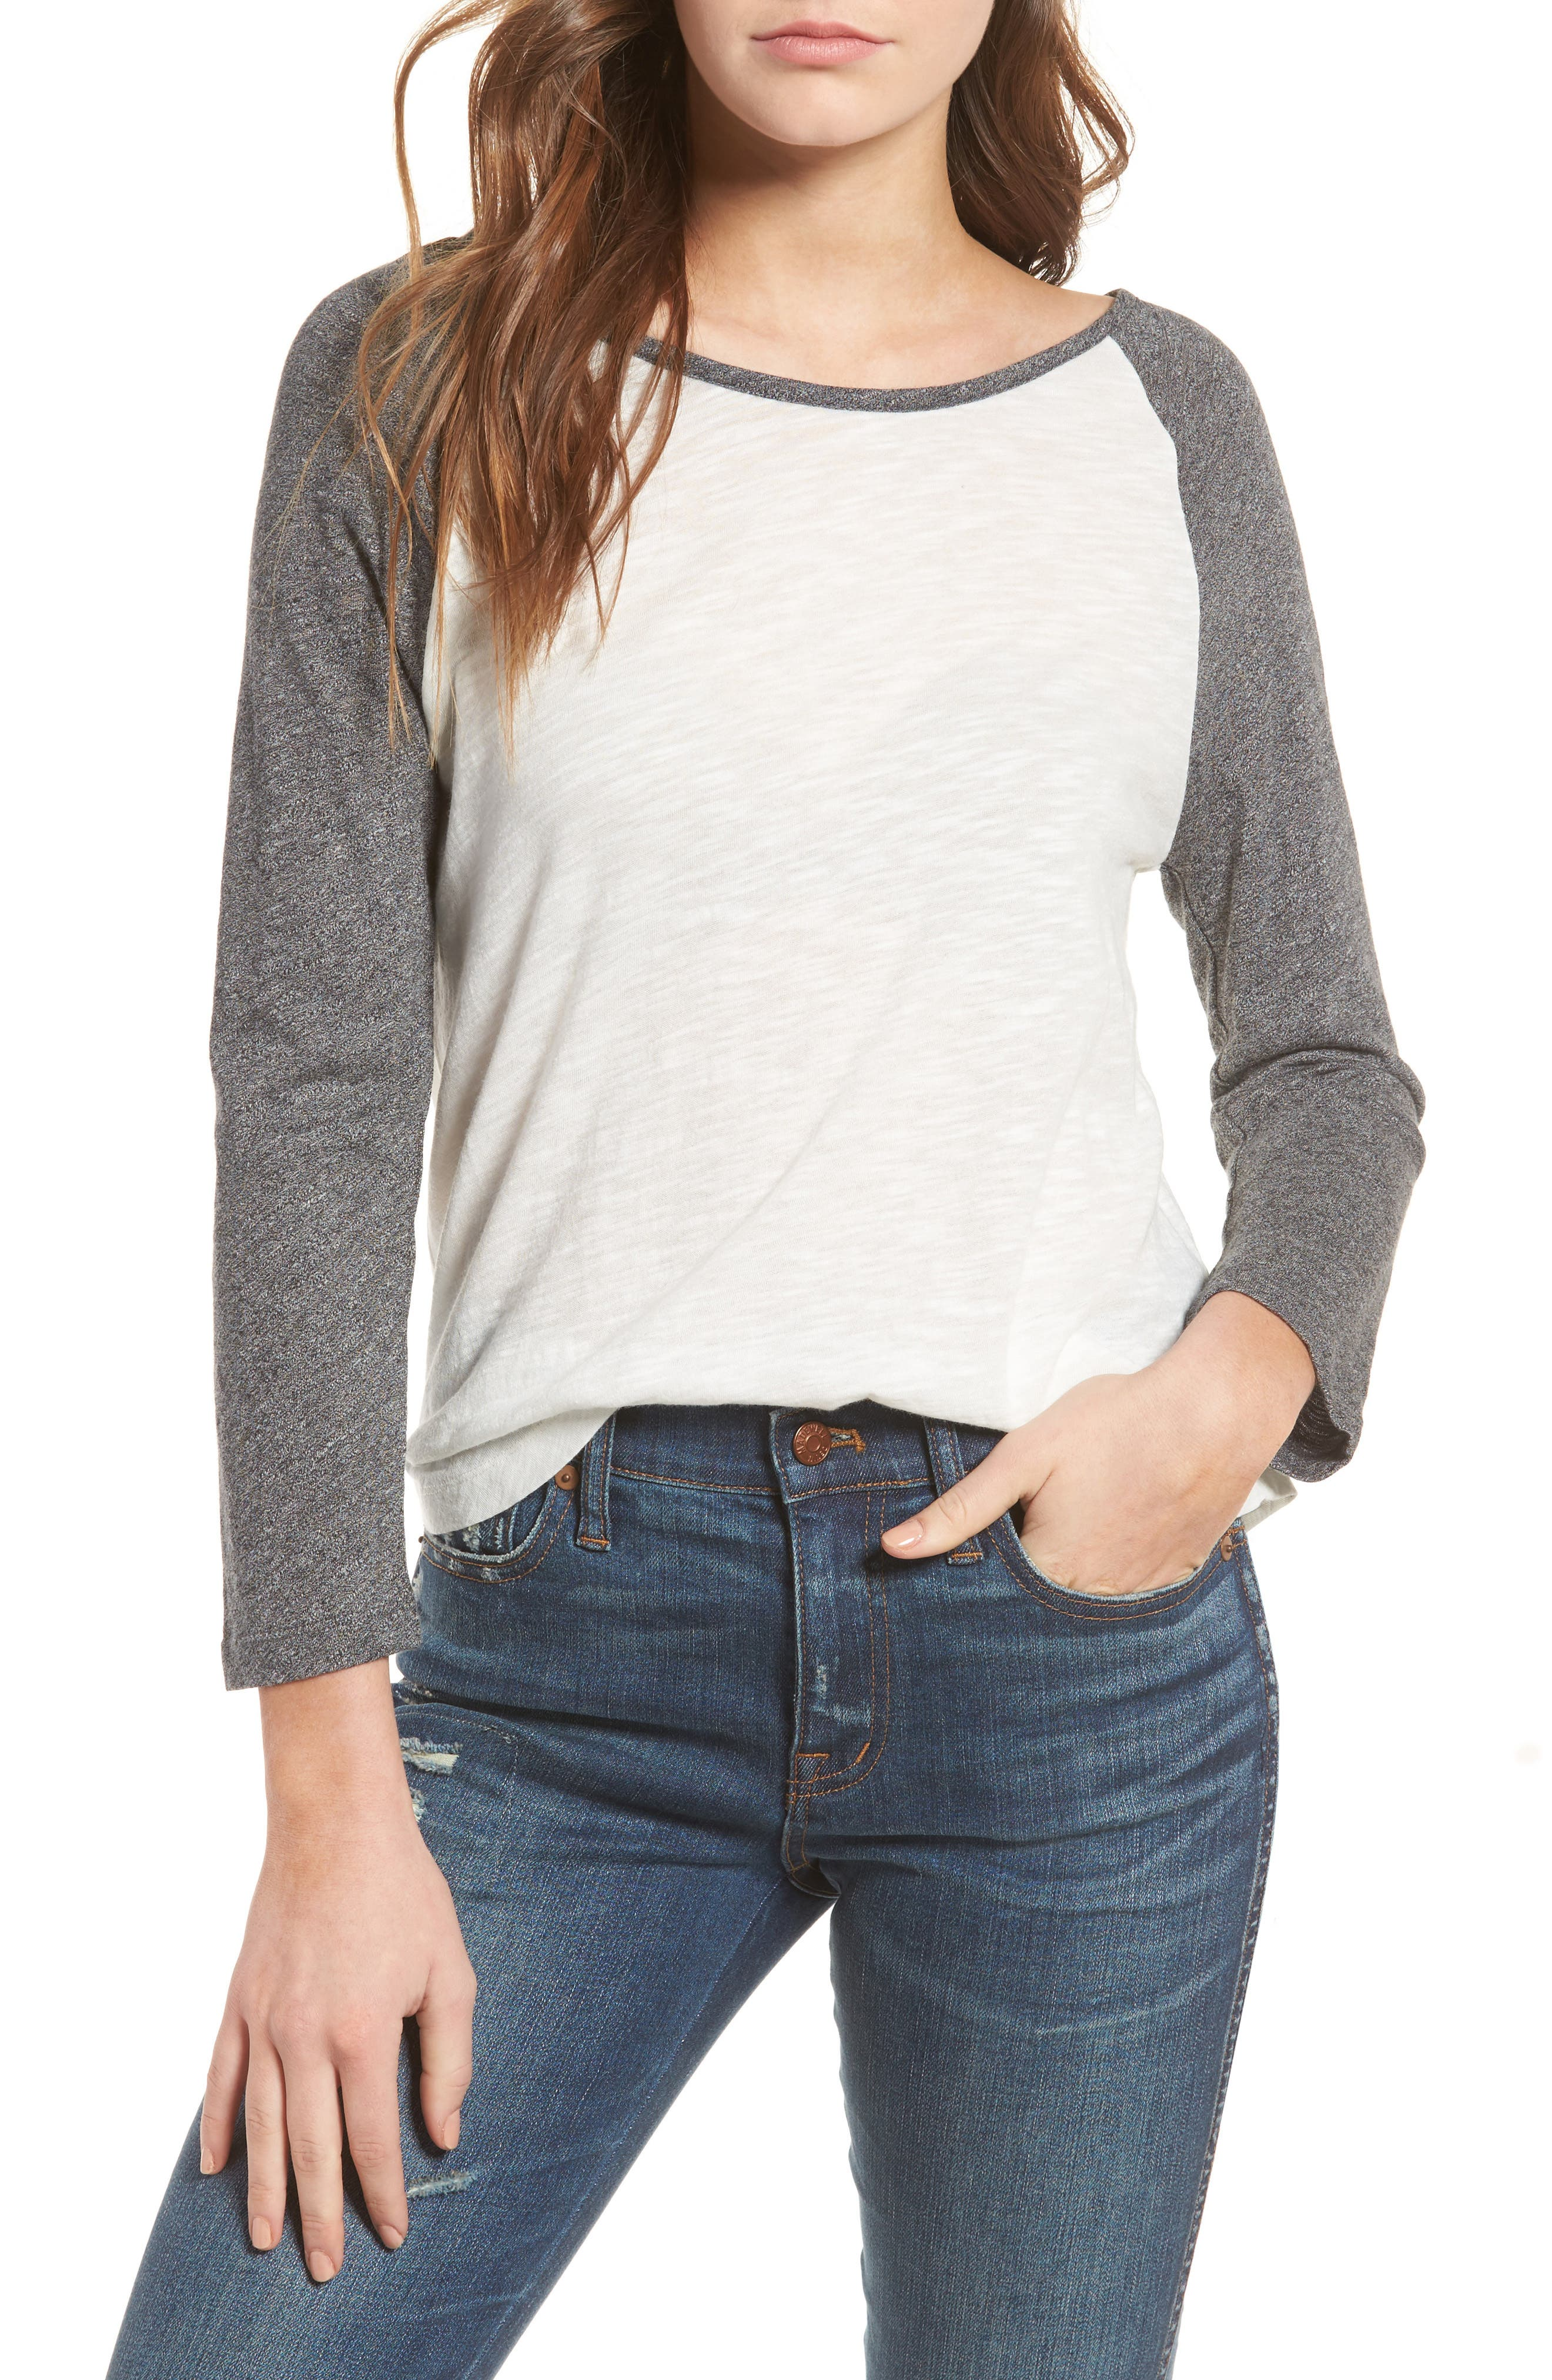 MADEWELL,                             Baseball Tee,                             Main thumbnail 1, color,                             021